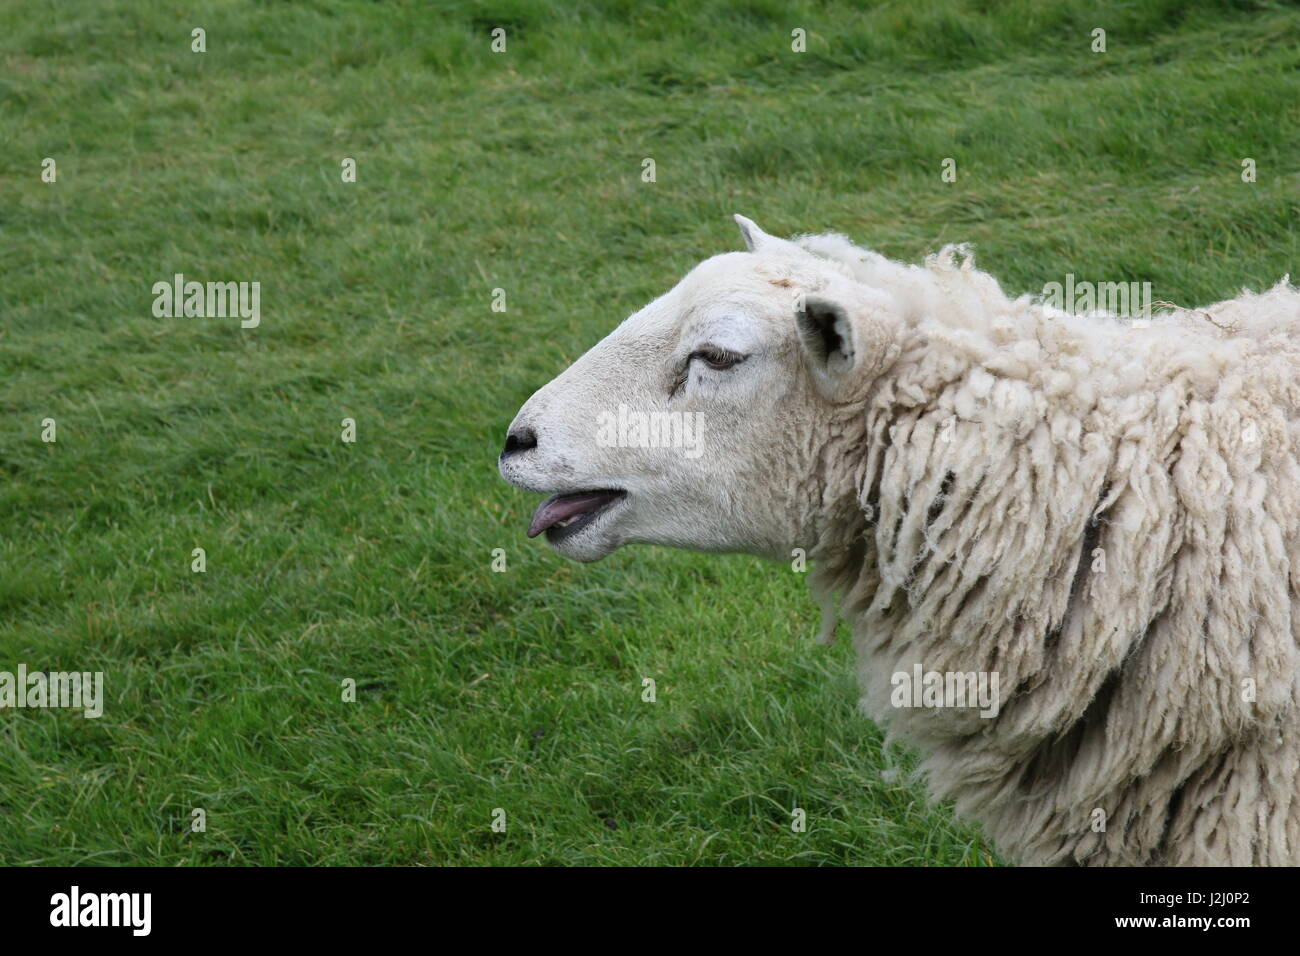 Head shot of a sheep bleating - Stock Image